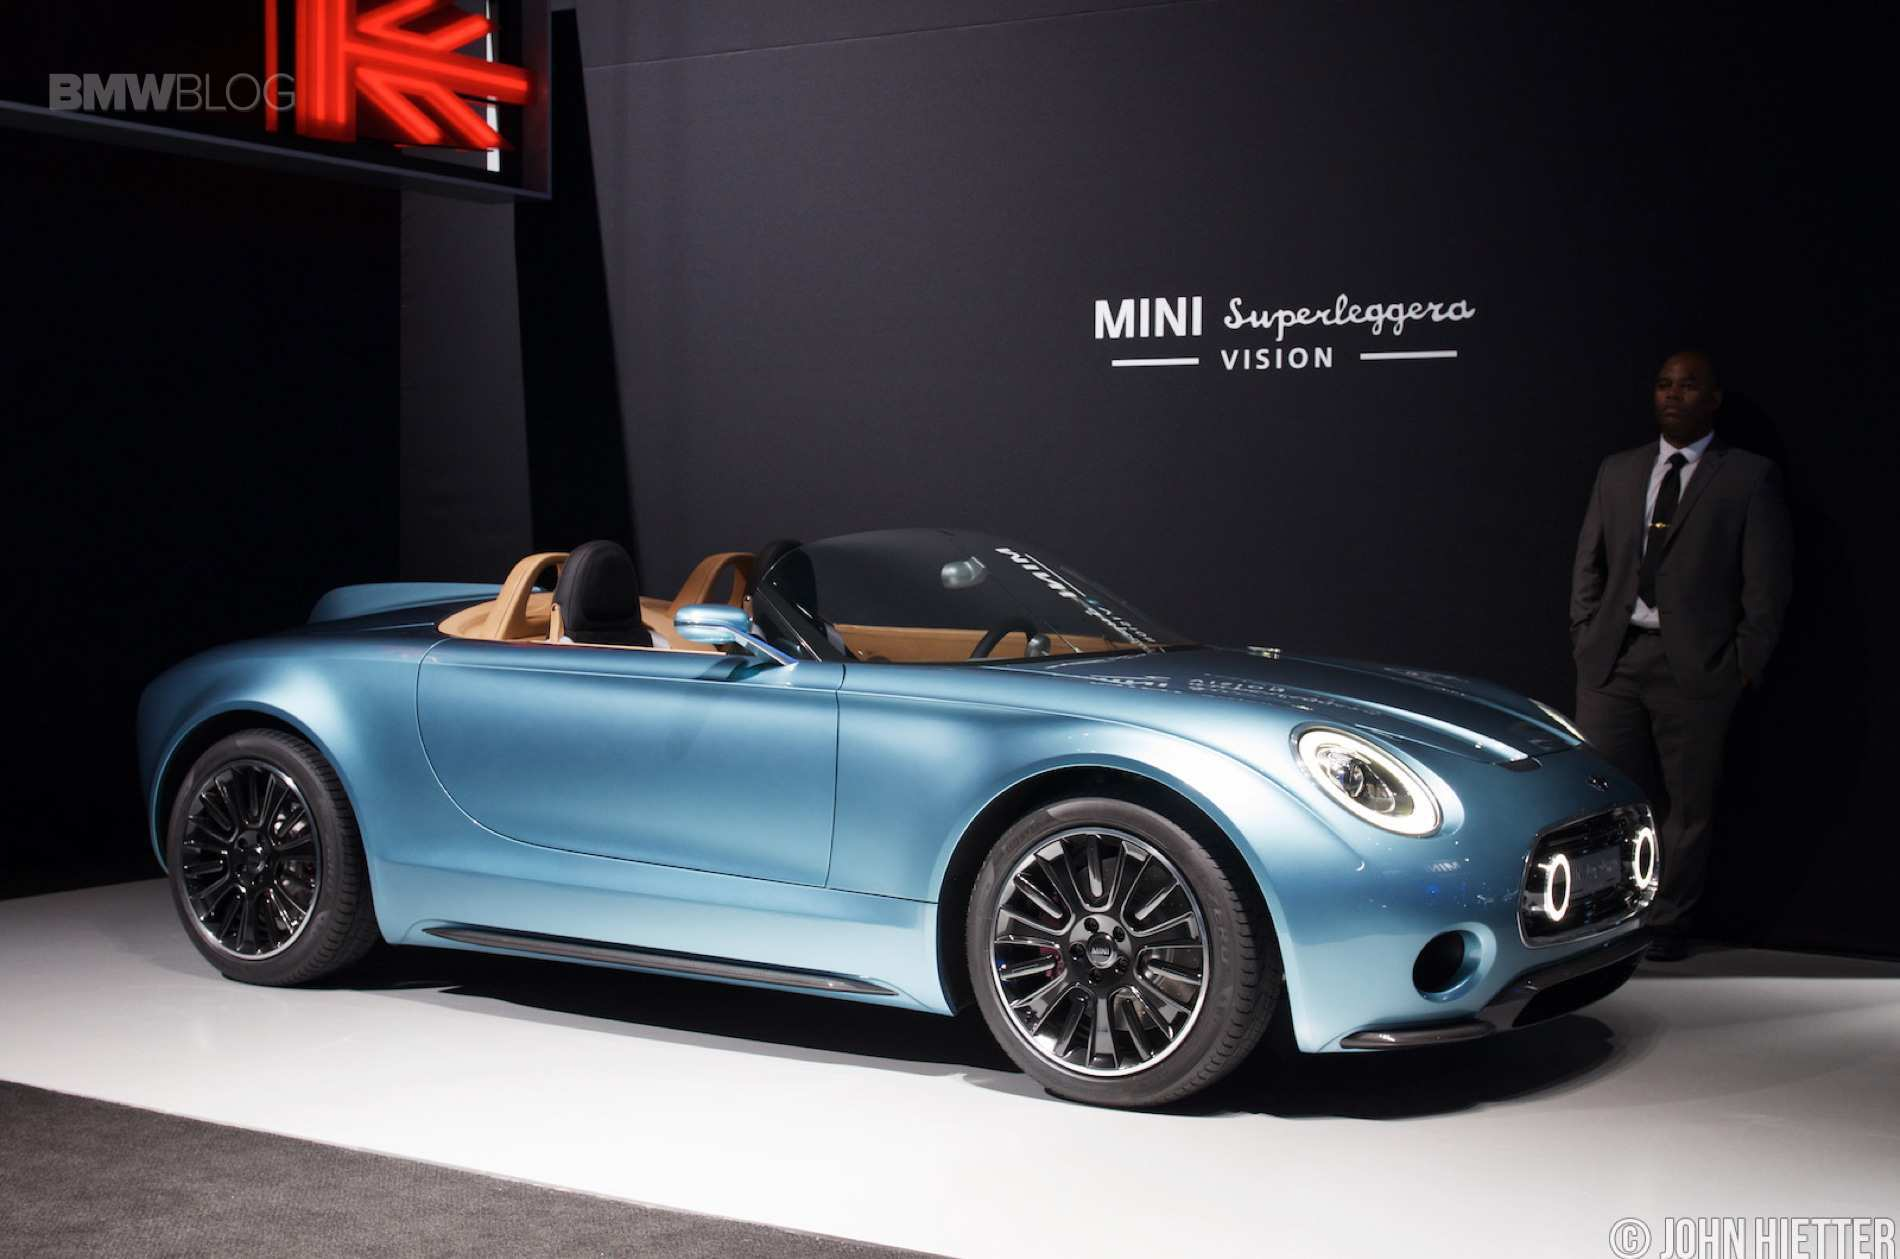 75 Best Review 2019 Mini Superleggera Photos with 2019 Mini Superleggera